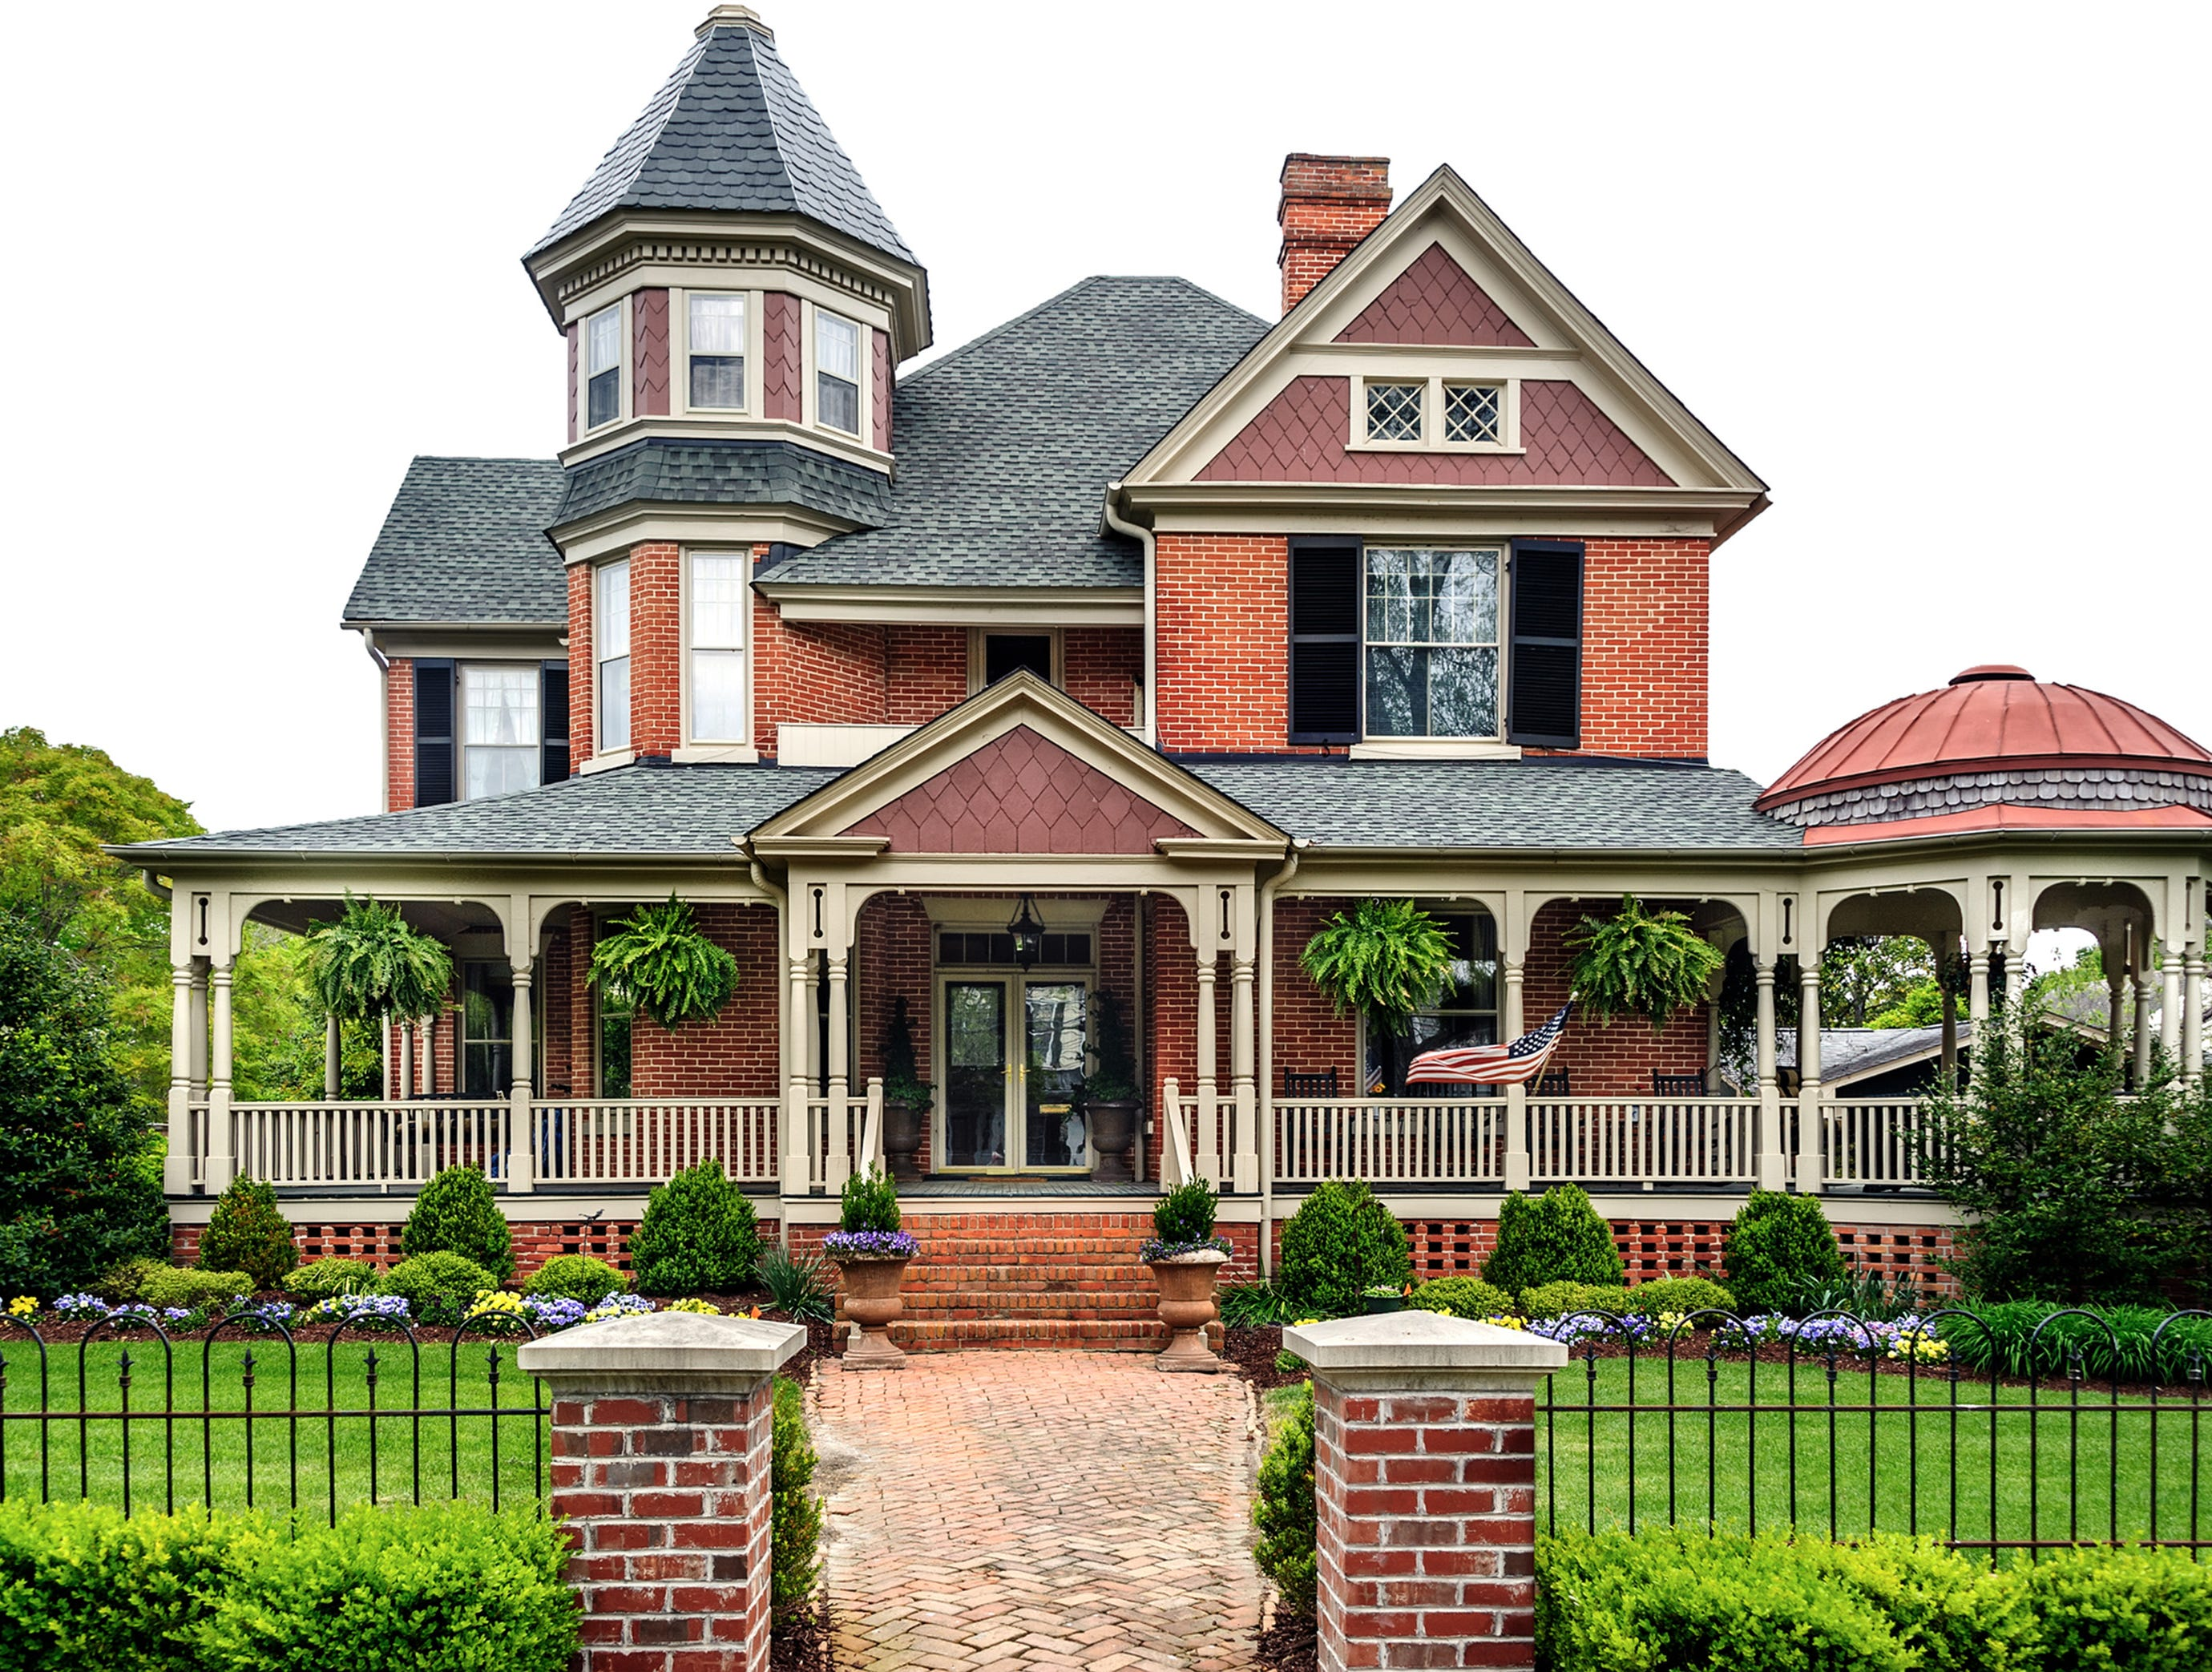 Home Advisor: How to renovate an older home without compromising its charm